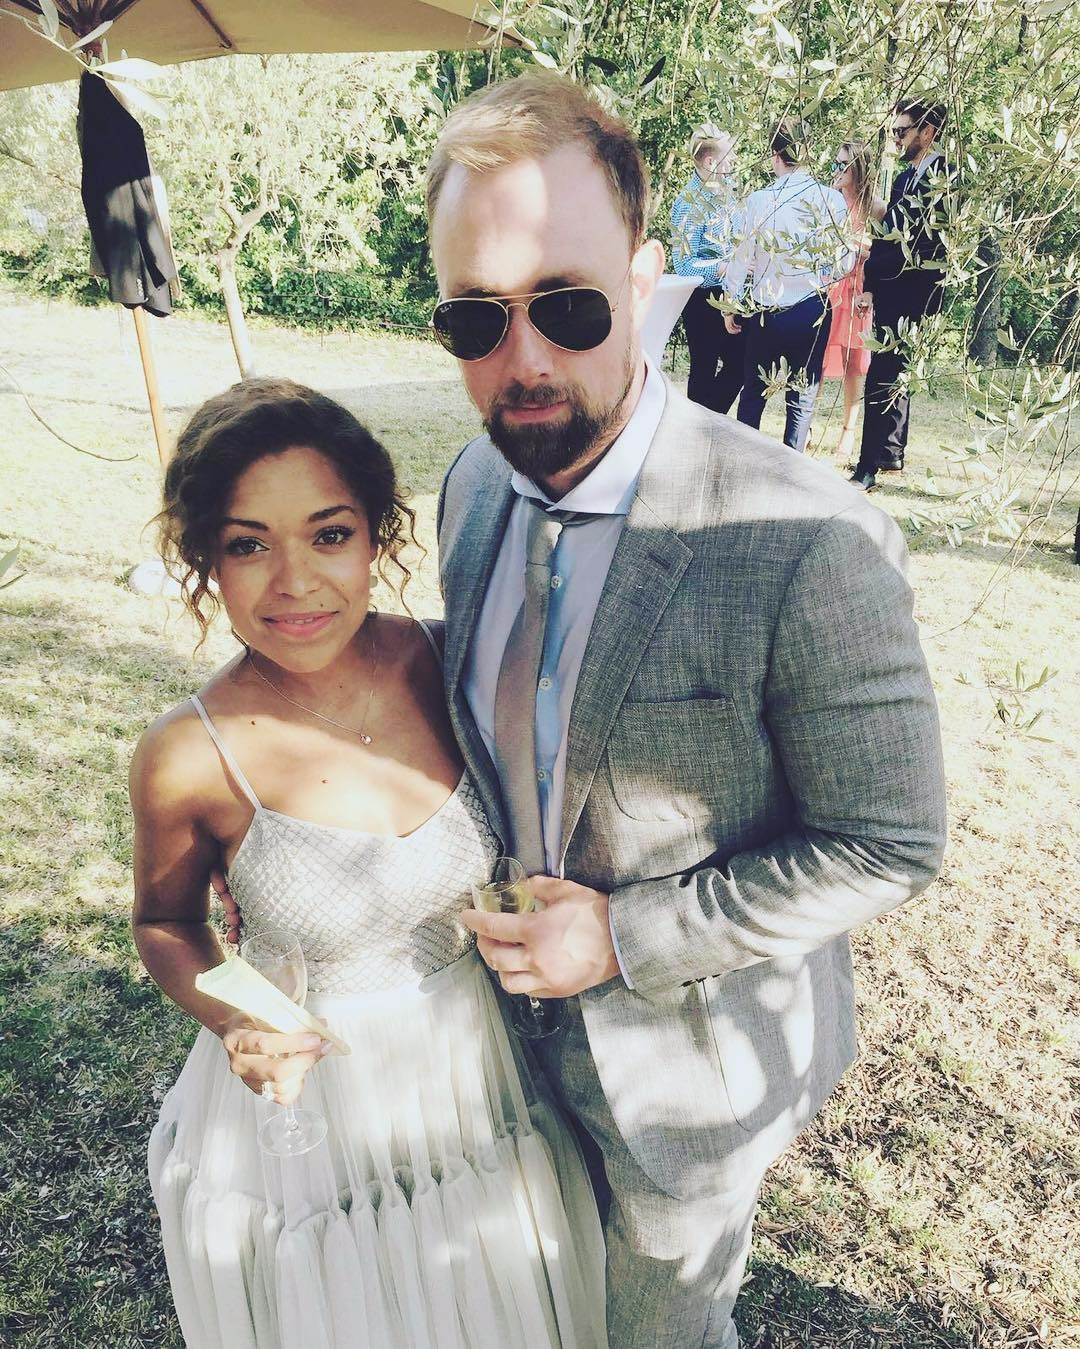 Antonia Thomas attending her friends' wedding with Michael Shelford, are they any soon on getting married?